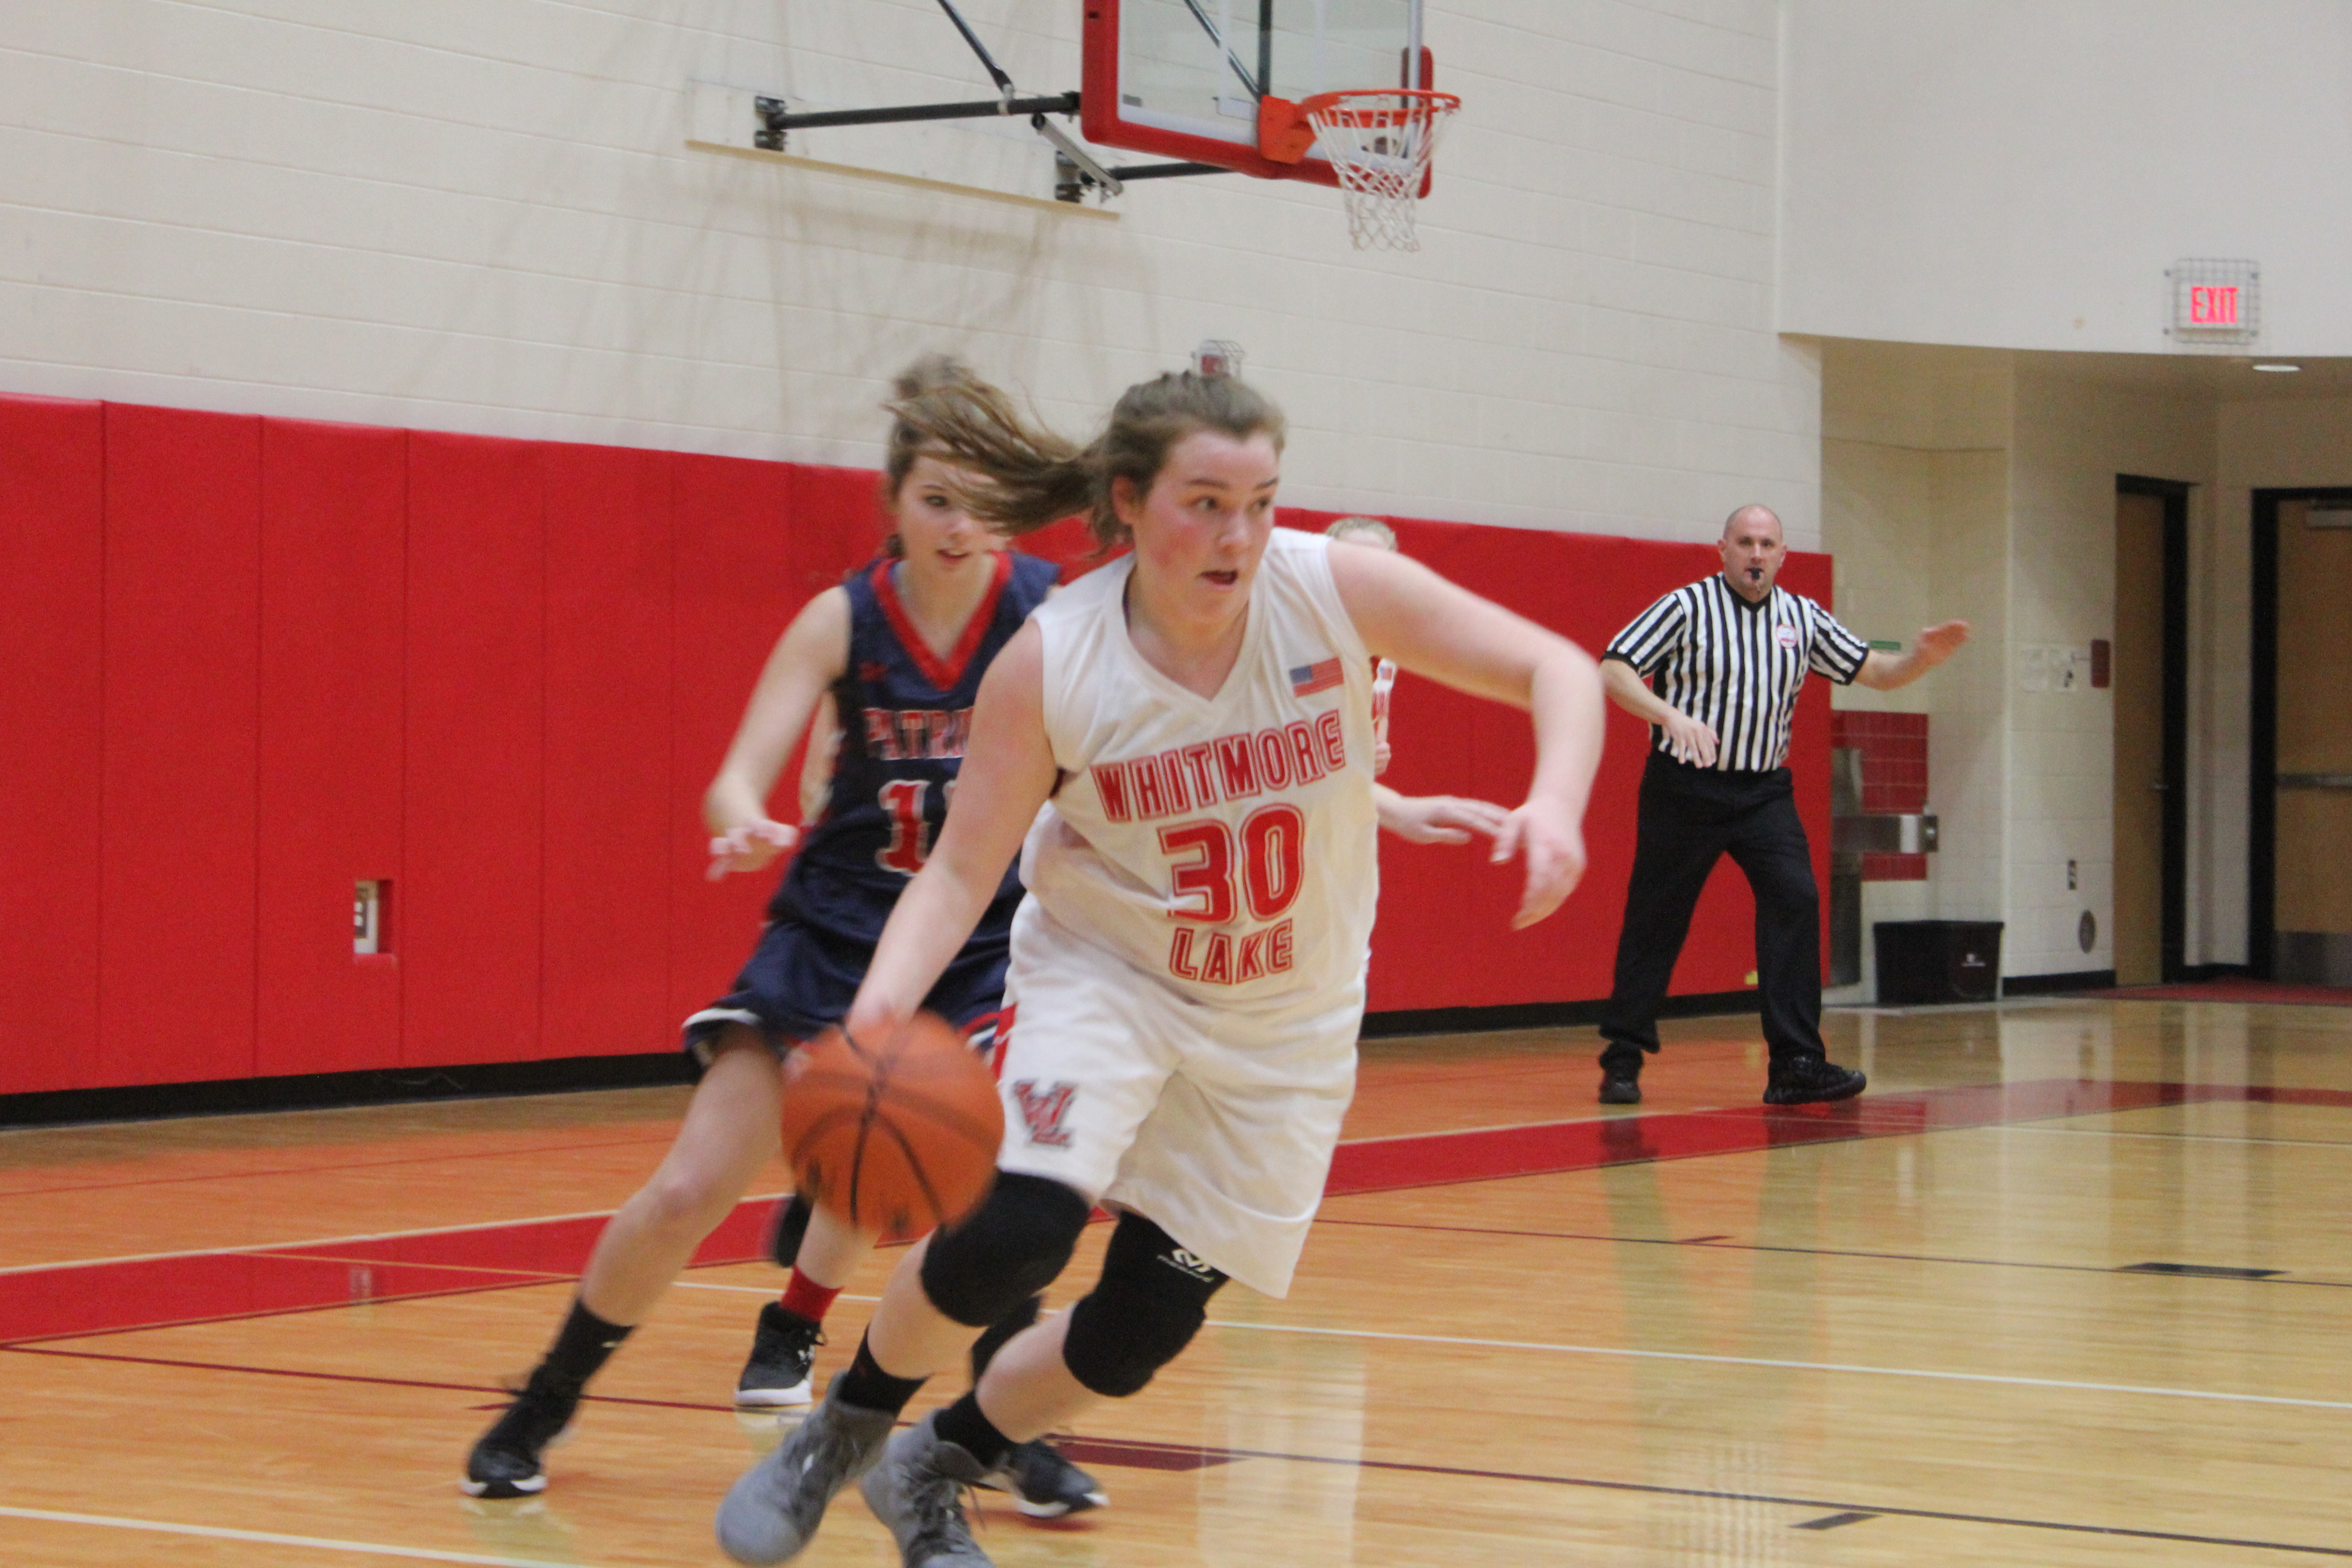 Middle School Girls Basketball starts in January